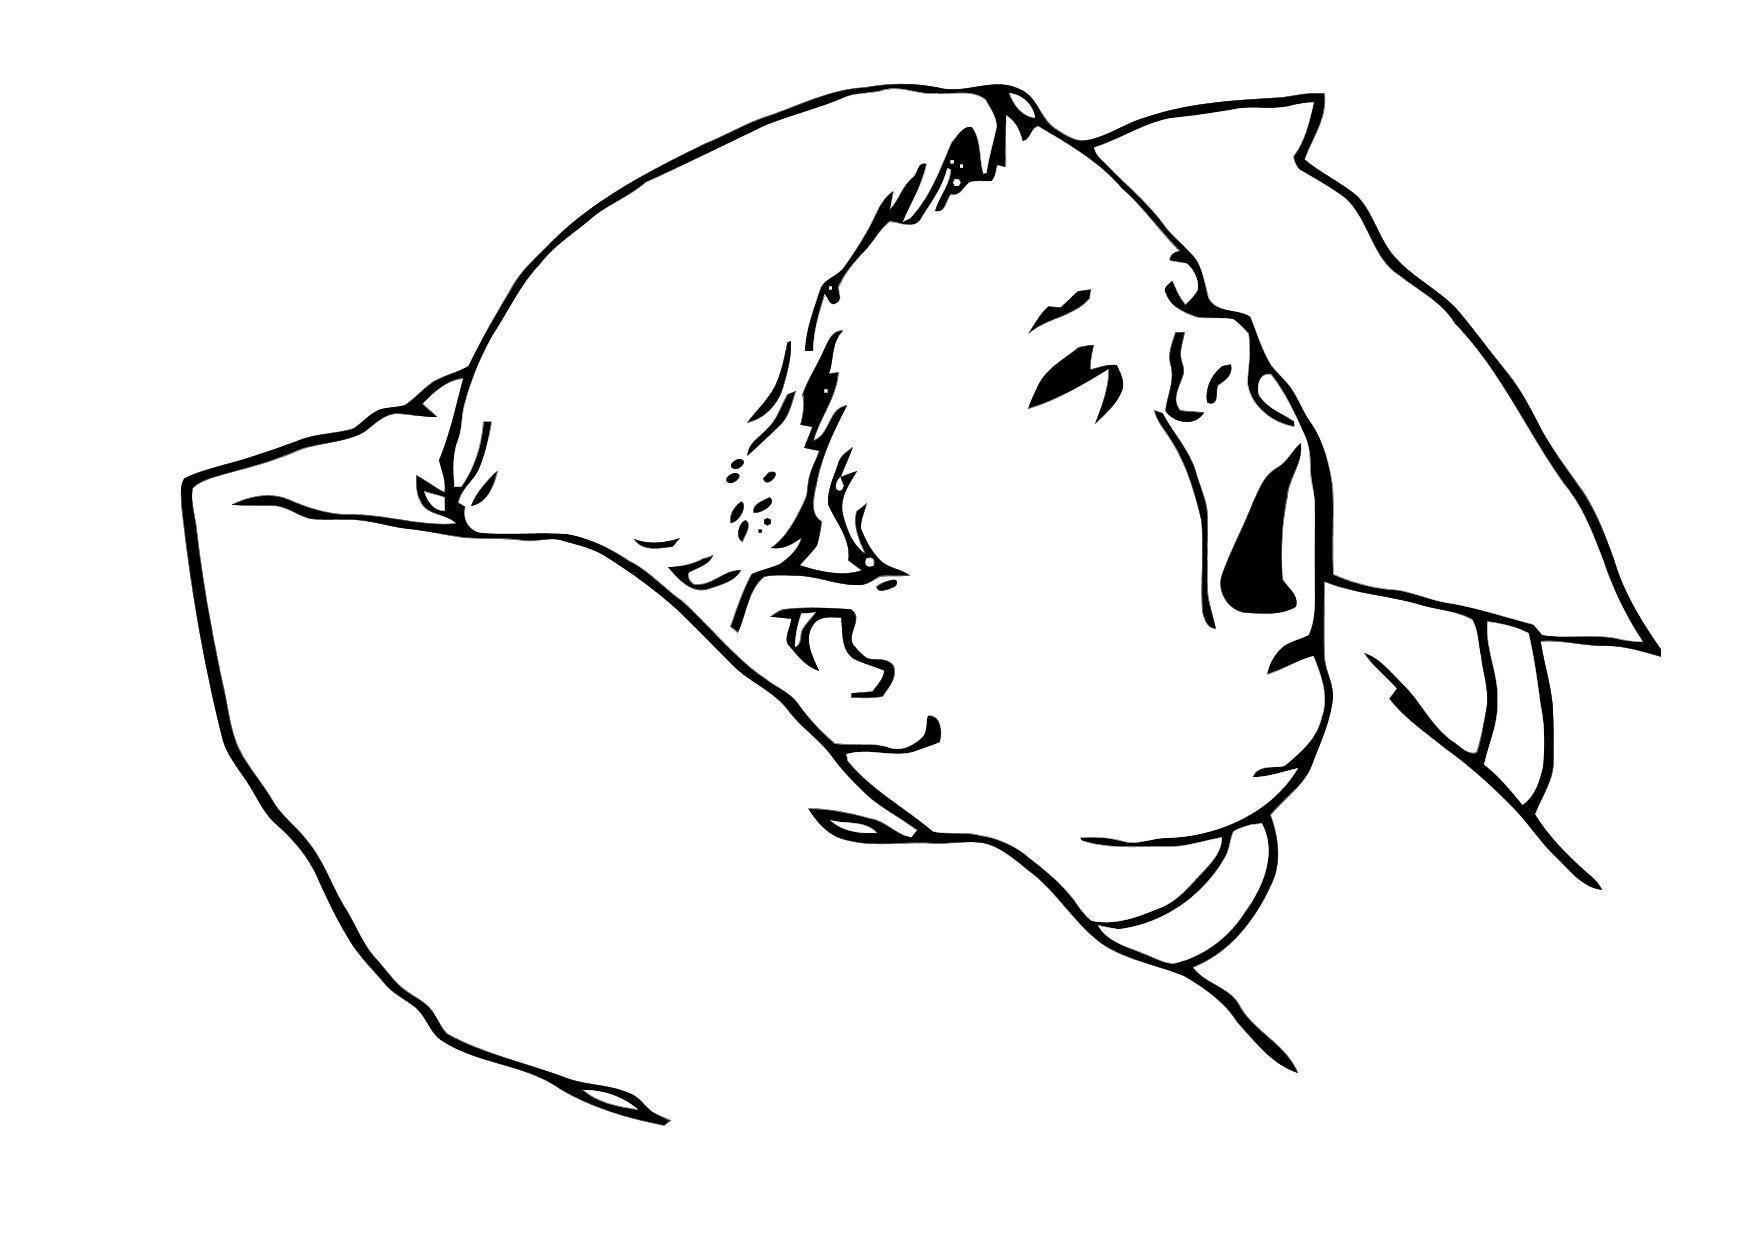 Coloring page baby - img 11890.